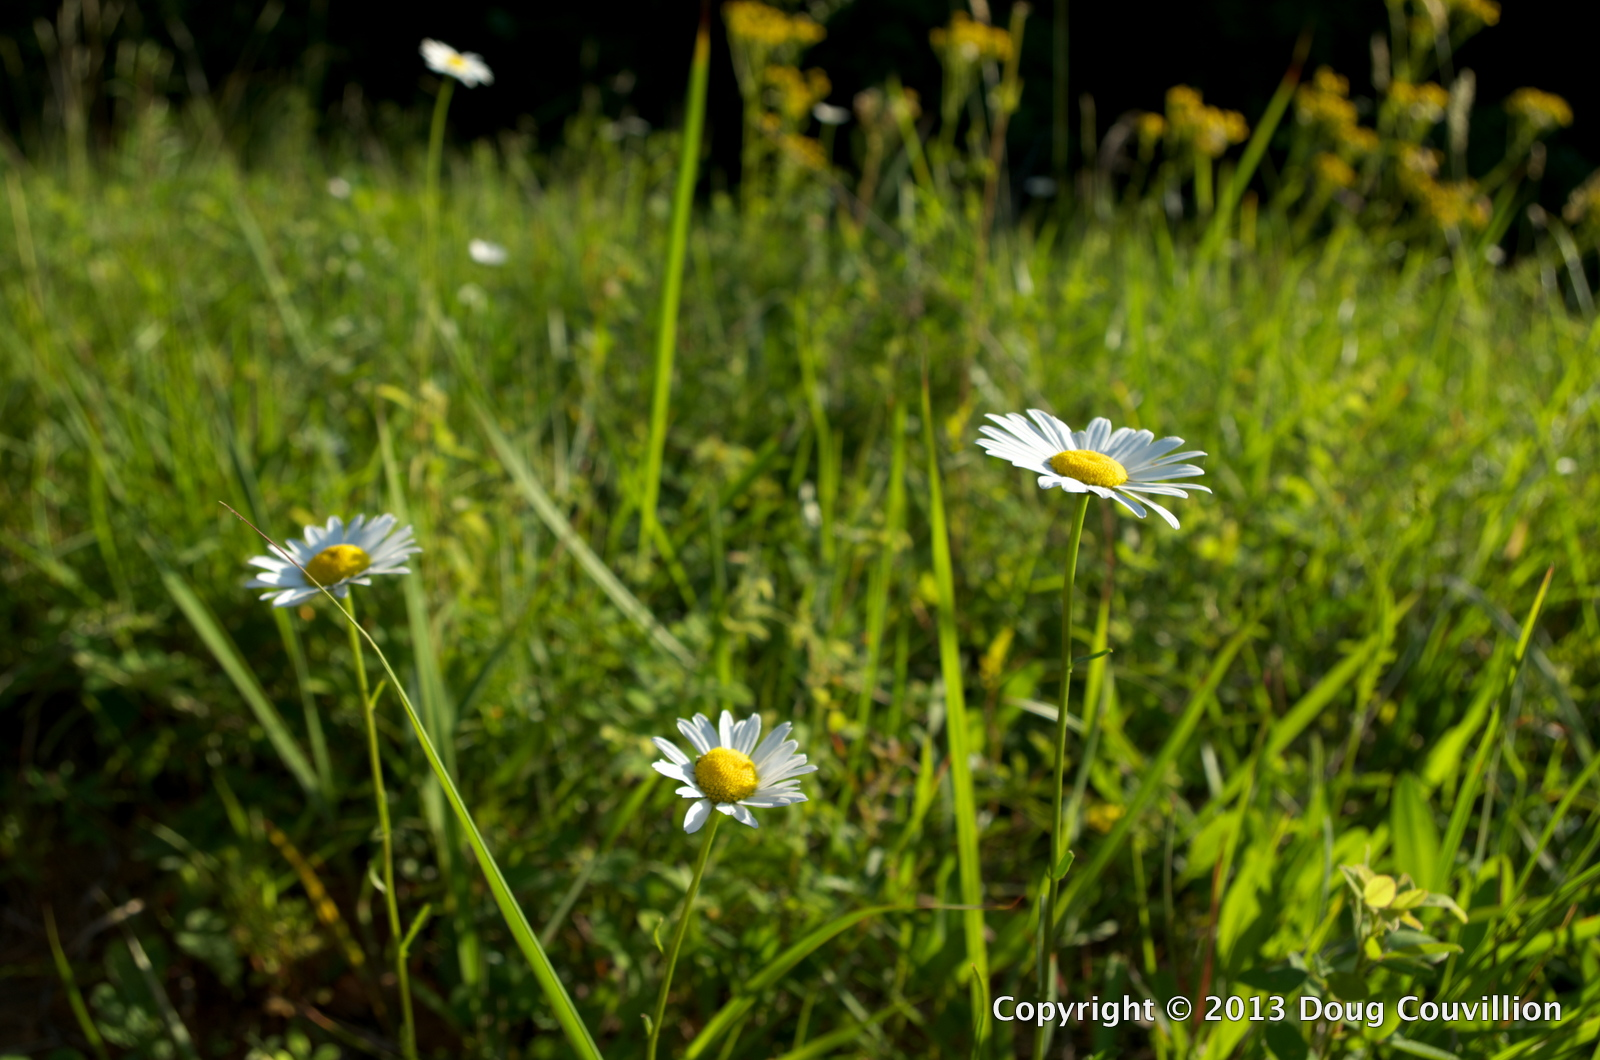 Photograph of wild daisies growing in a field